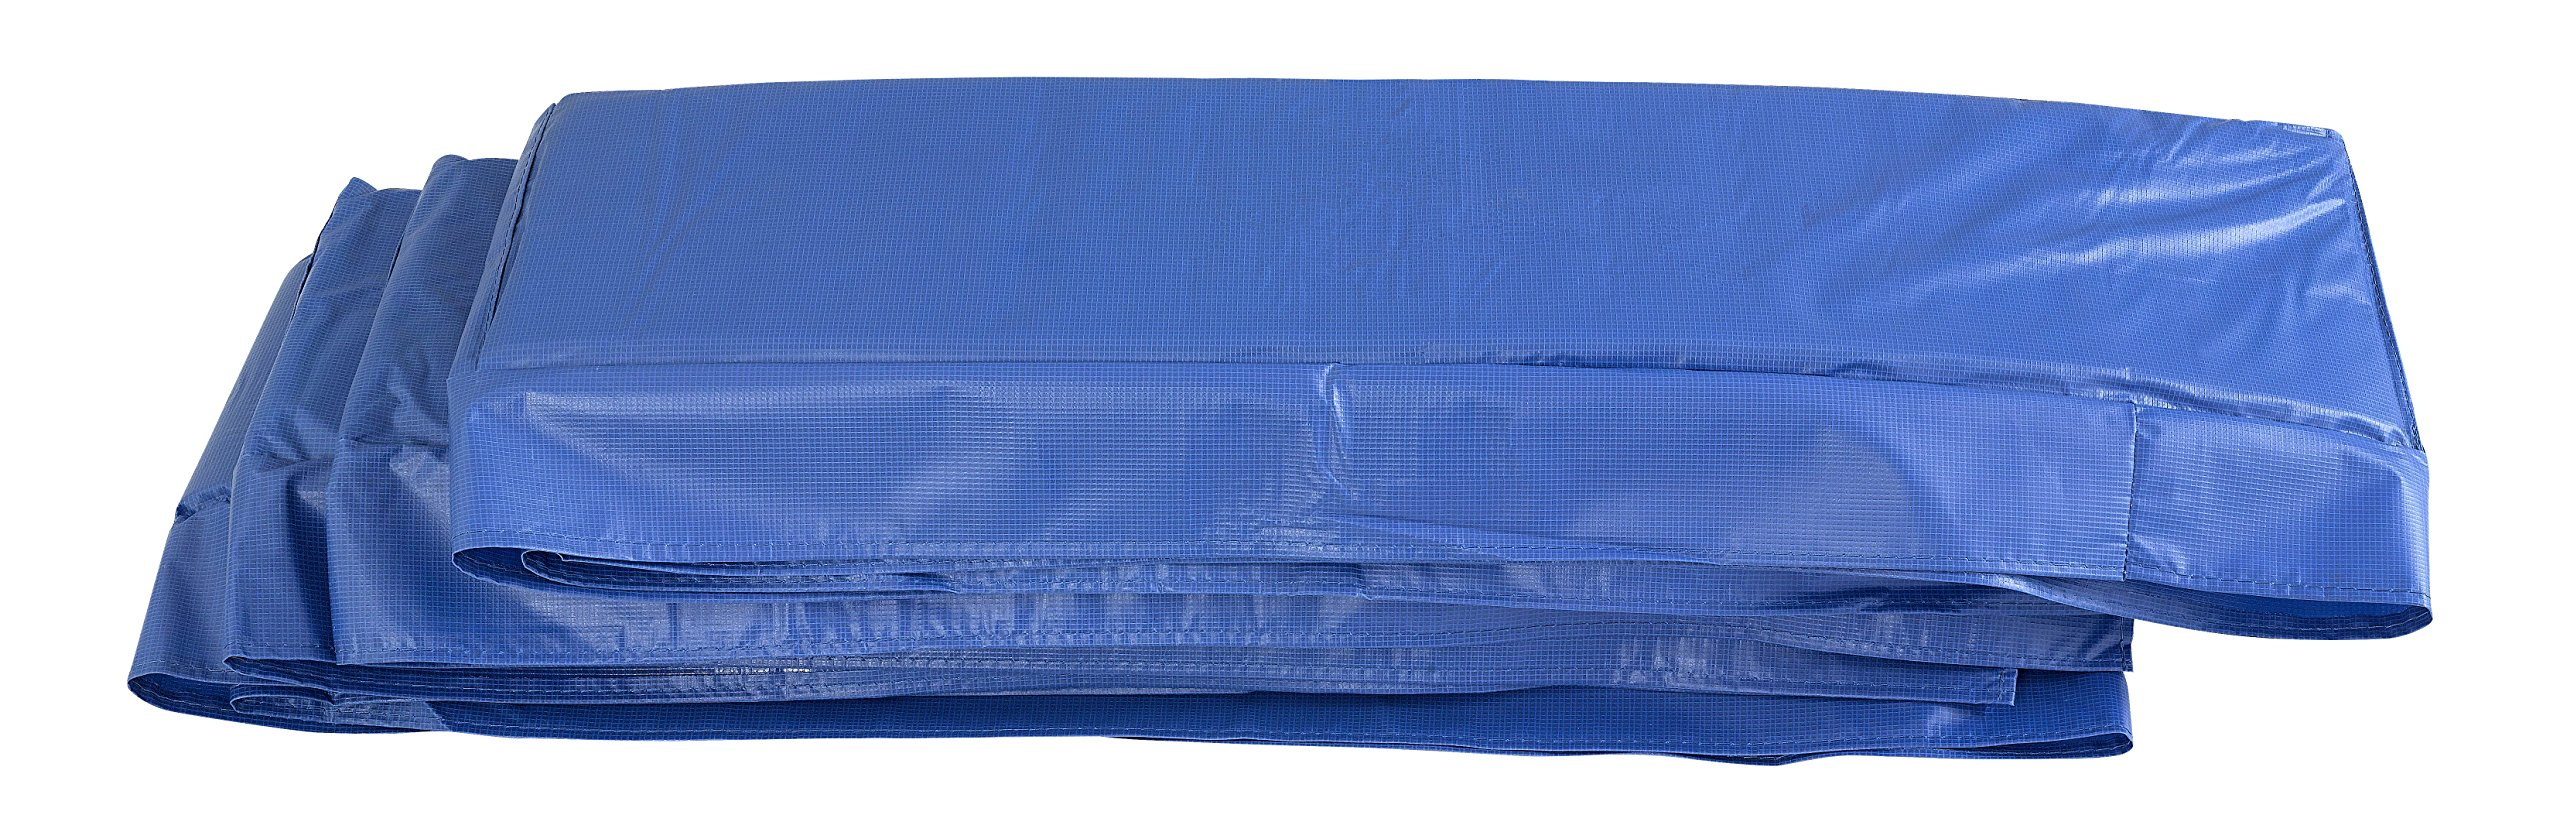 Upper Bounce 13' Trampoline Safety Pad Fits for 13' x 13' Square Trampoline Frames - 12'' wide - Blue